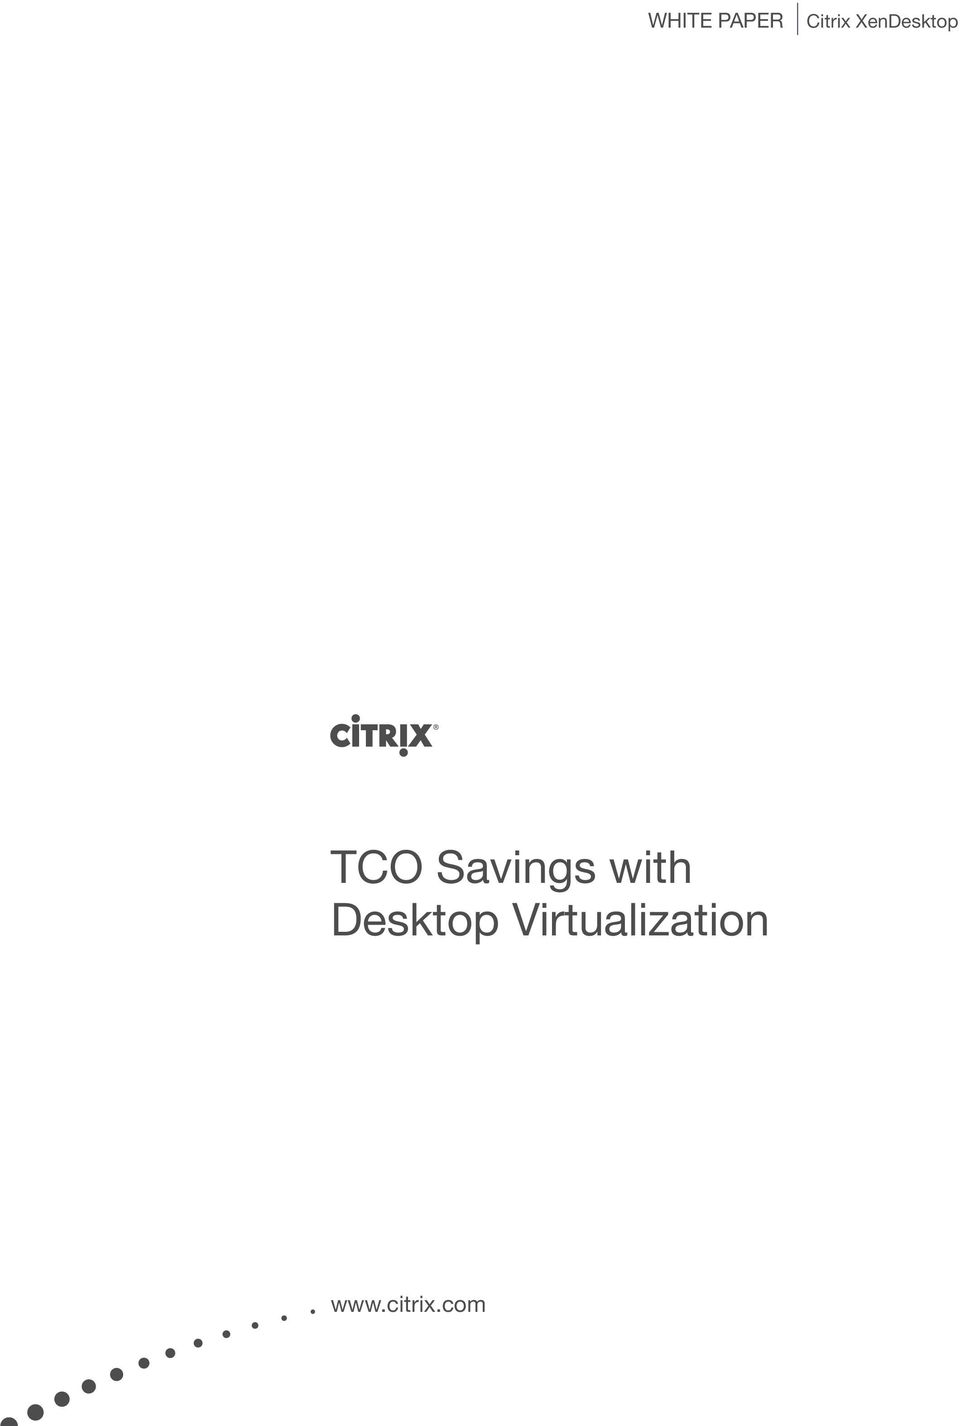 Savings with Desktop